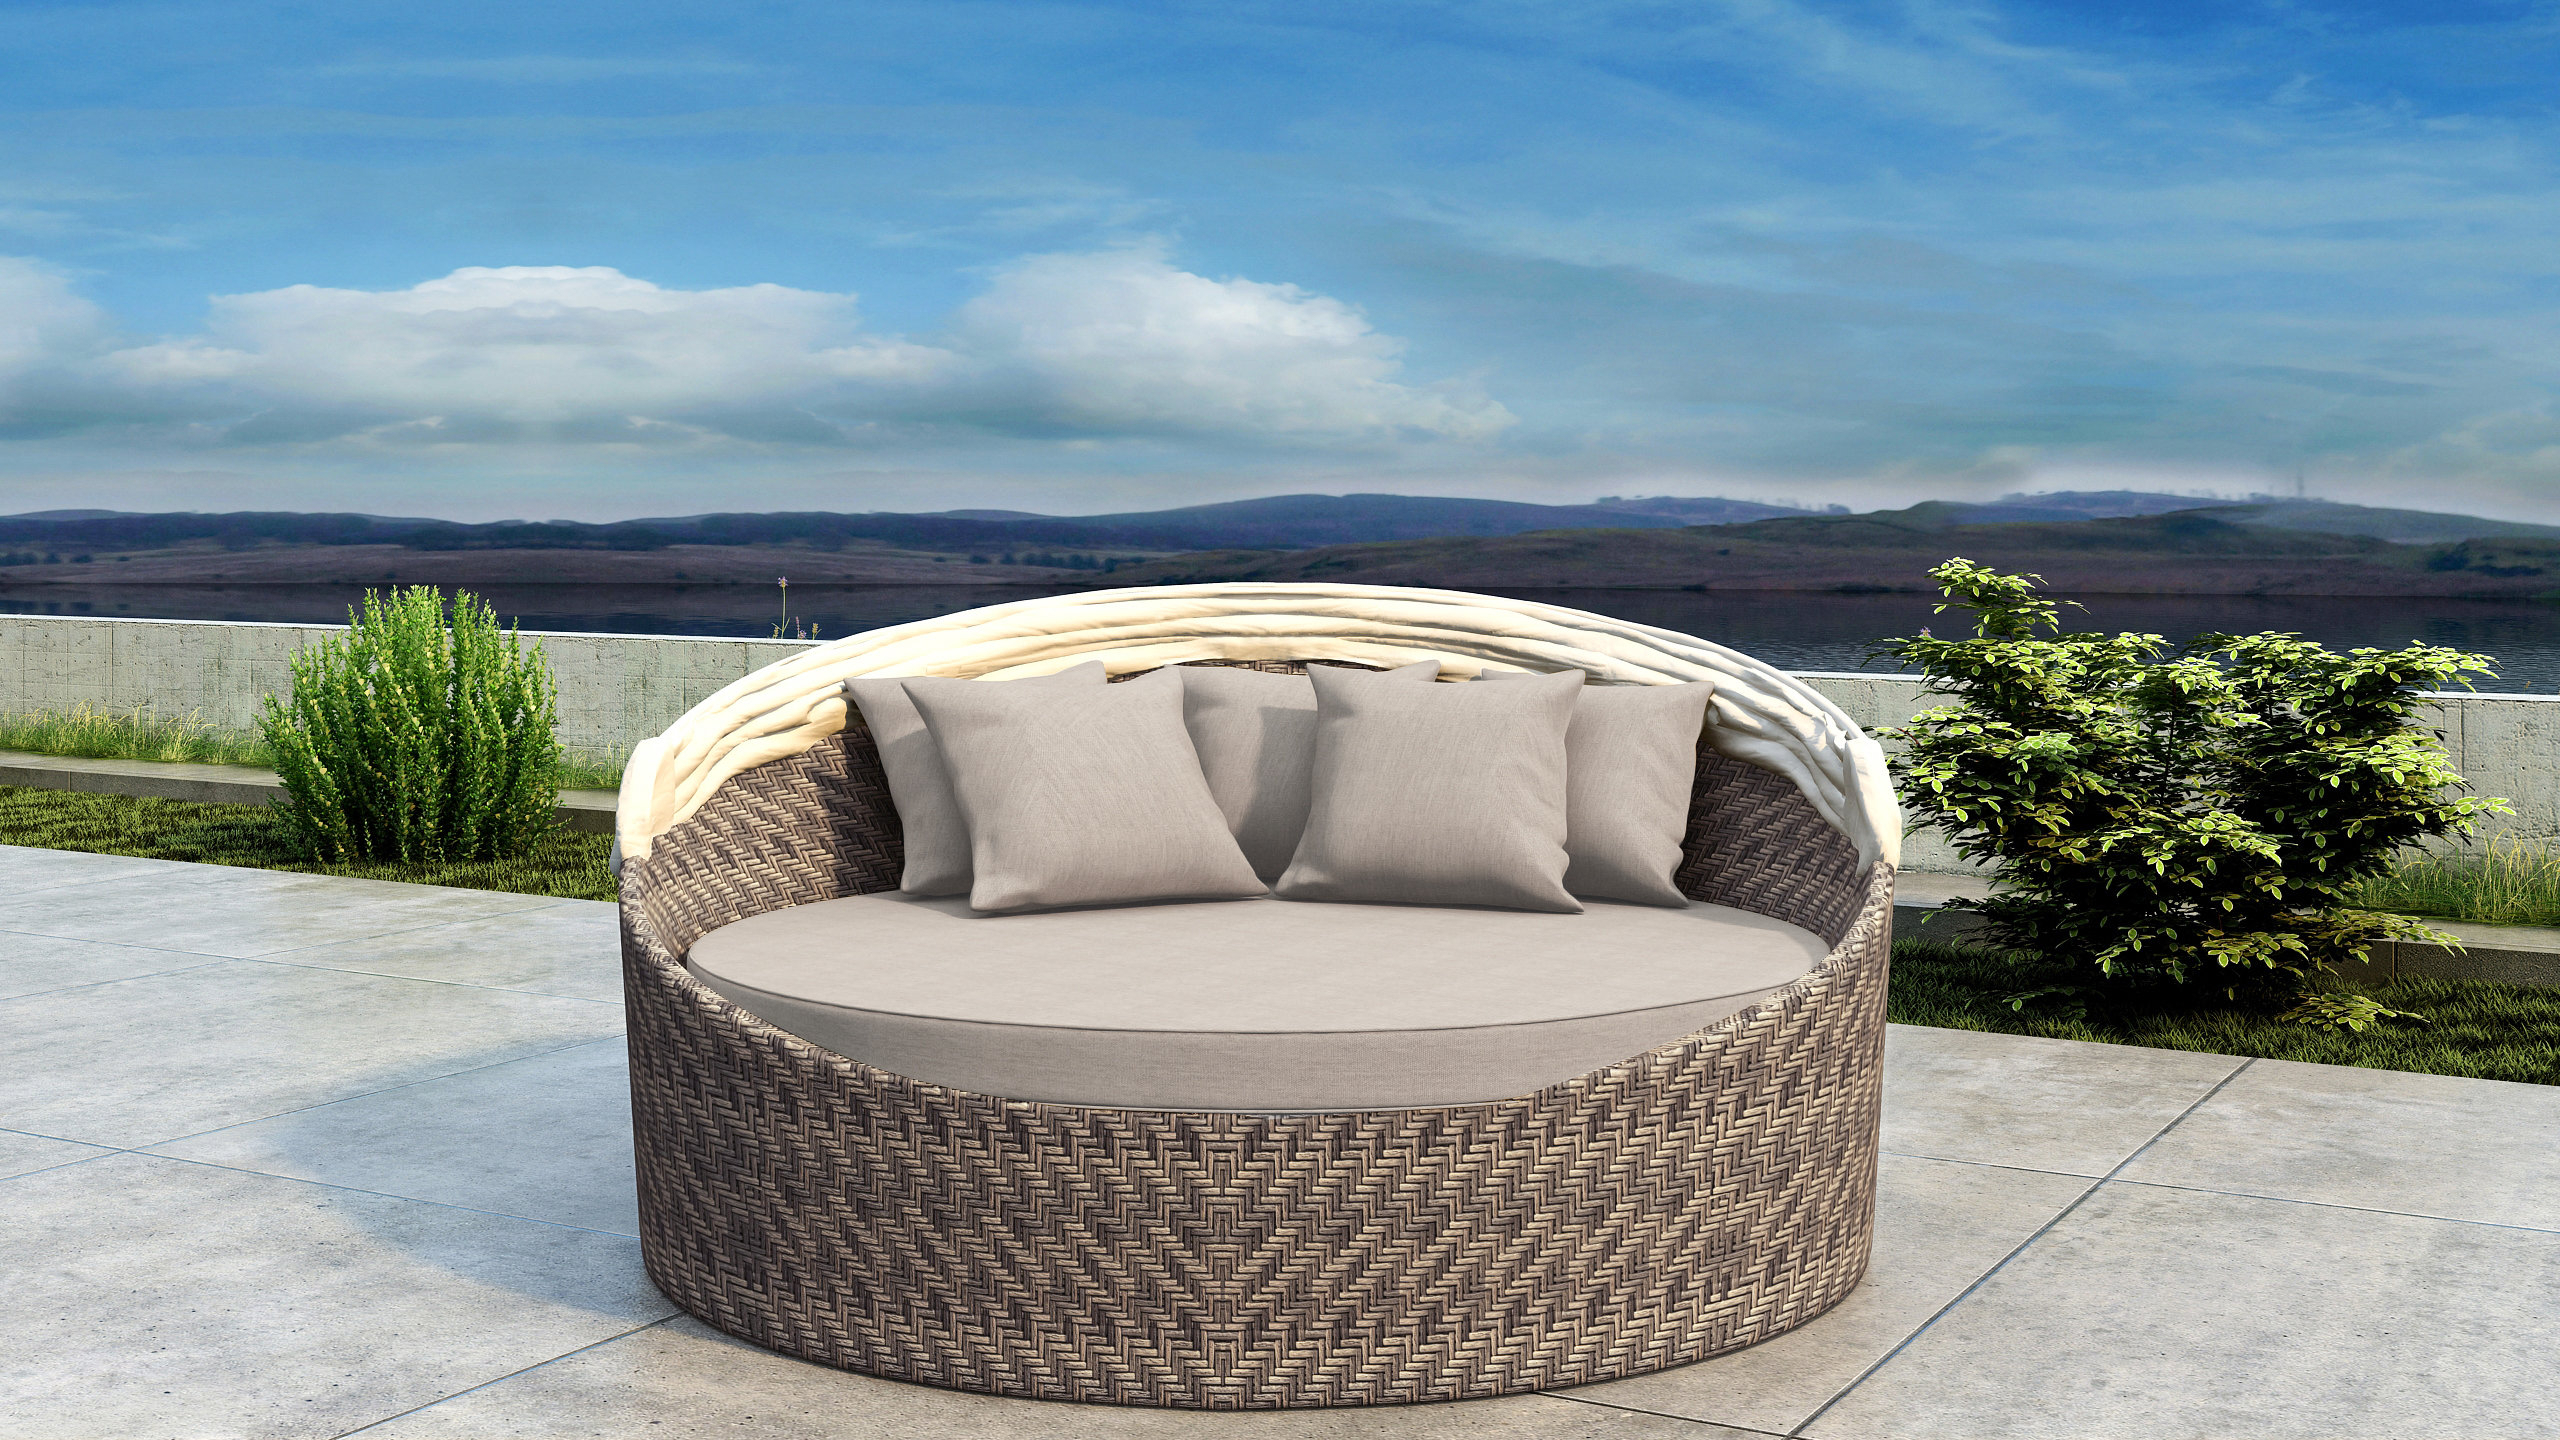 2020 Gillham Patio Daybed With Sunbrella Cushion Inside Grosvenor Bamboo Patio Daybeds With Cushions (View 13 of 20)